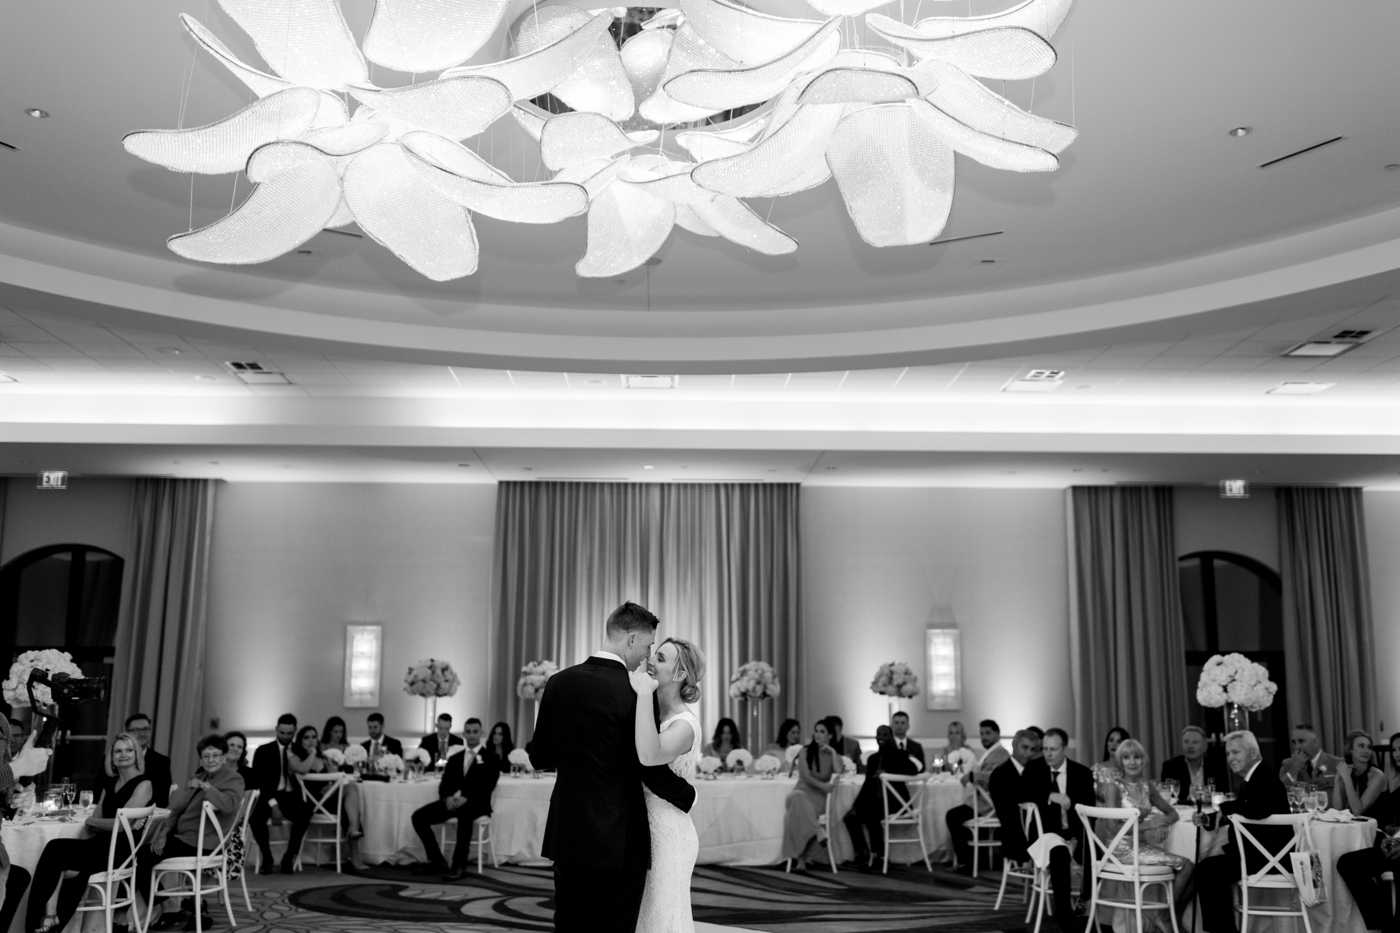 Omni wedding ballroom photography